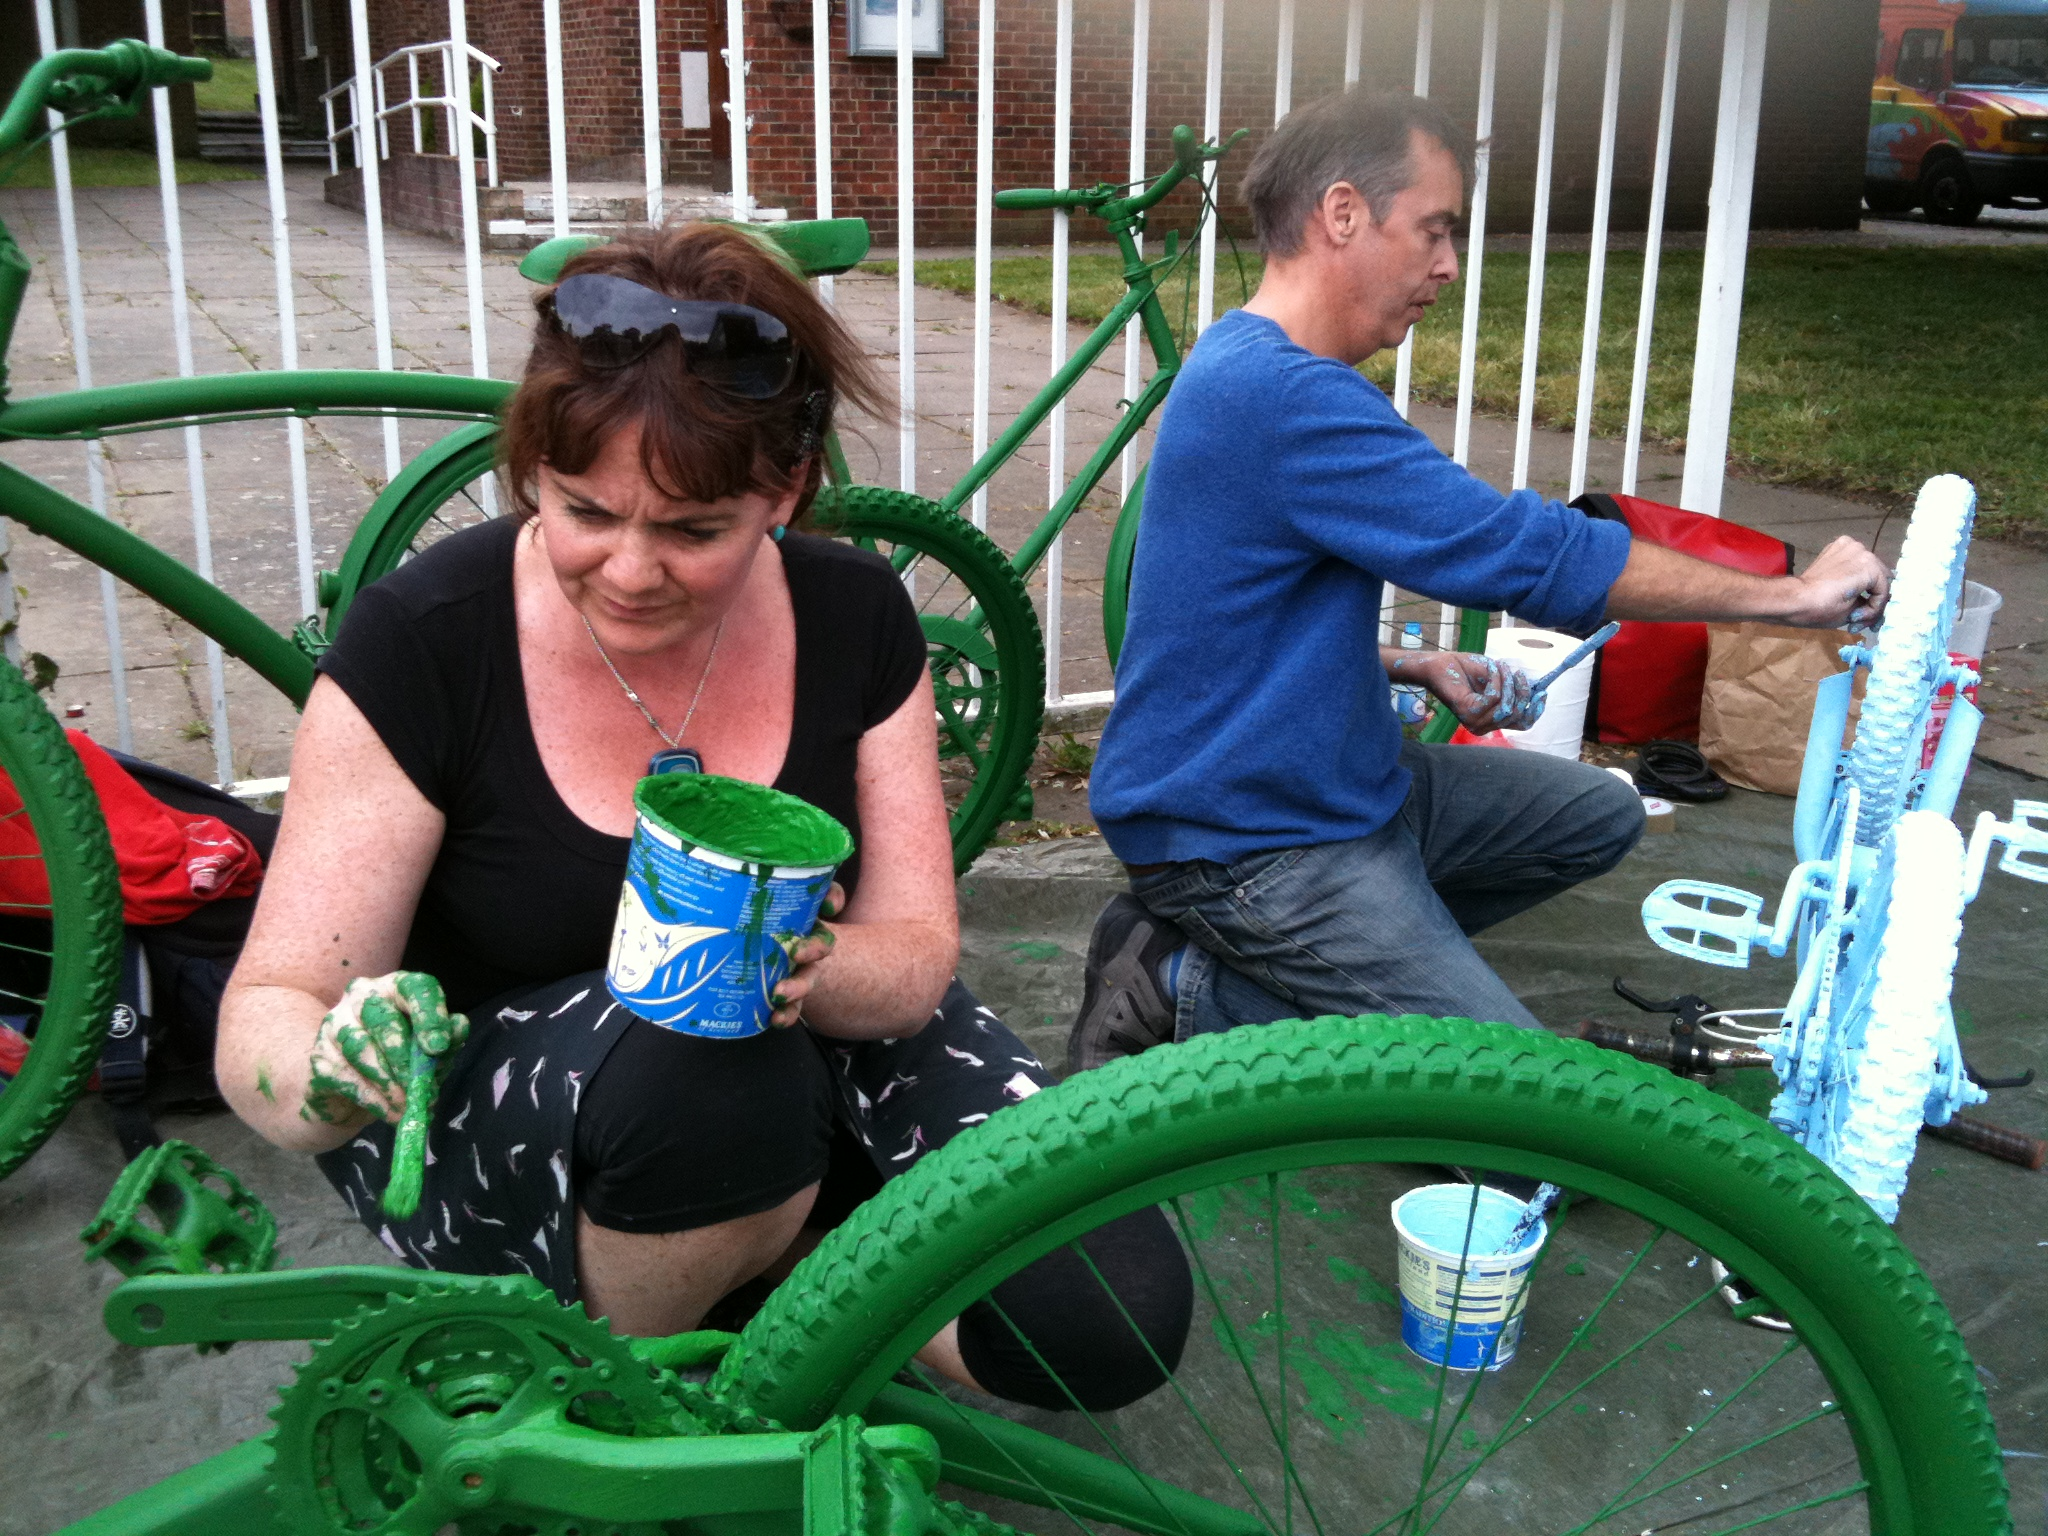 Maria and Ray paint bikes tree green and sky blue